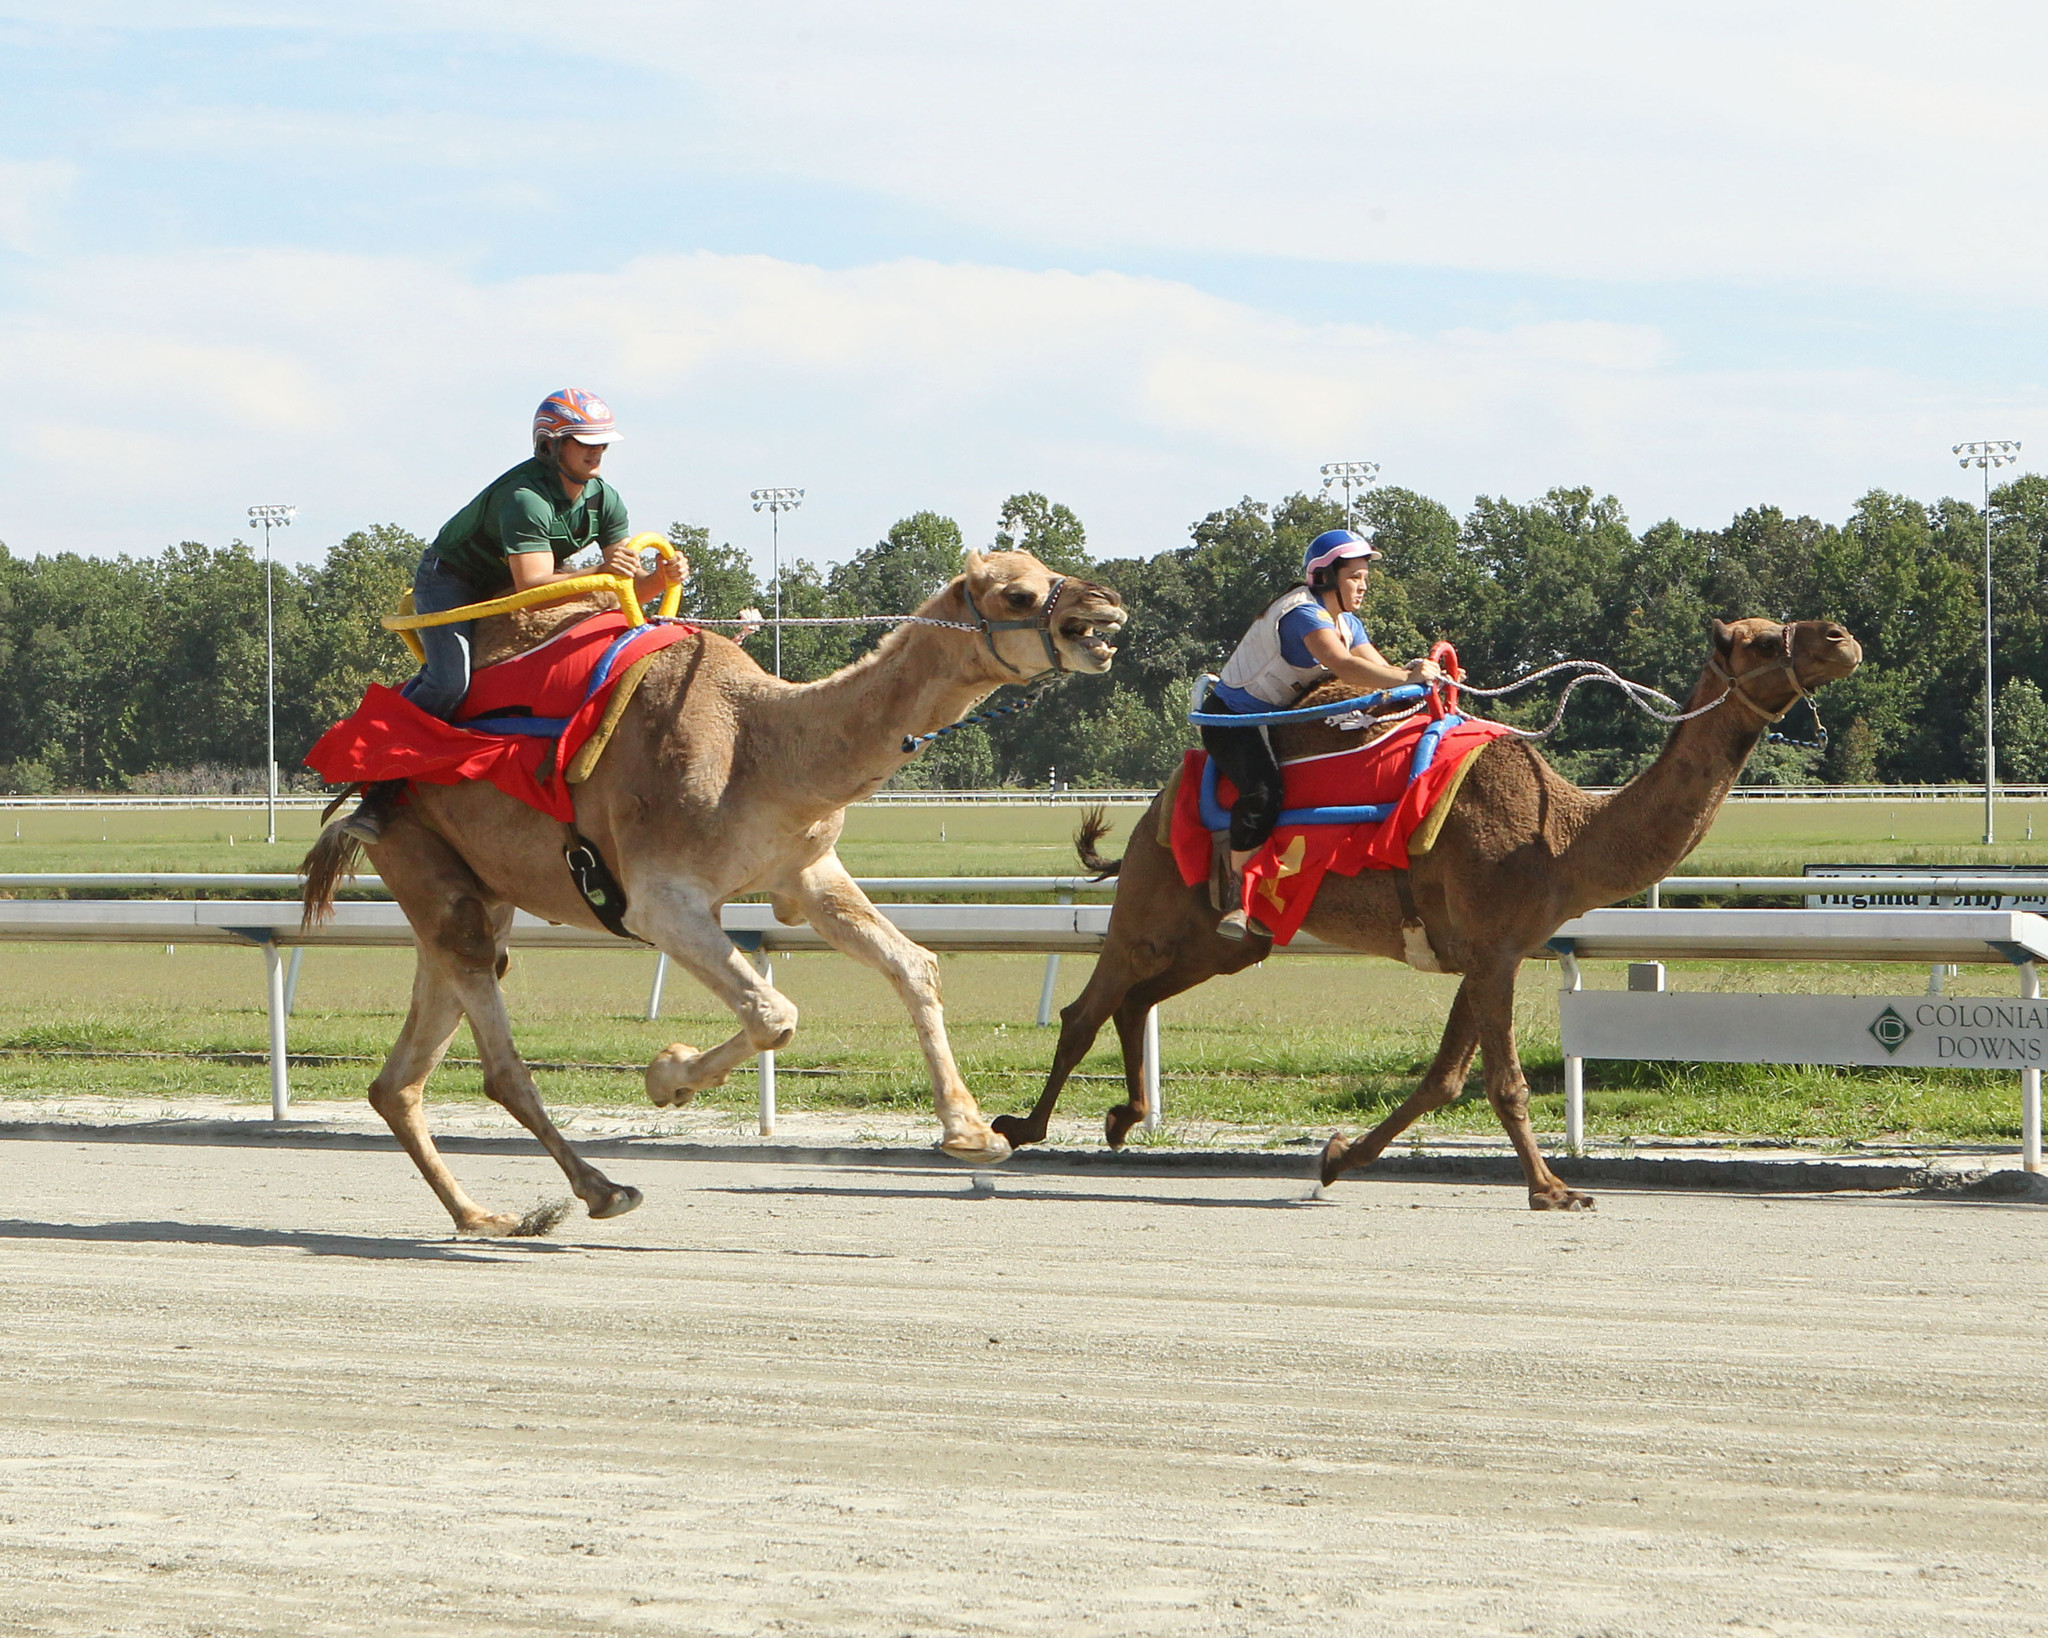 sunday racing at colonial downs highlighted by camel and